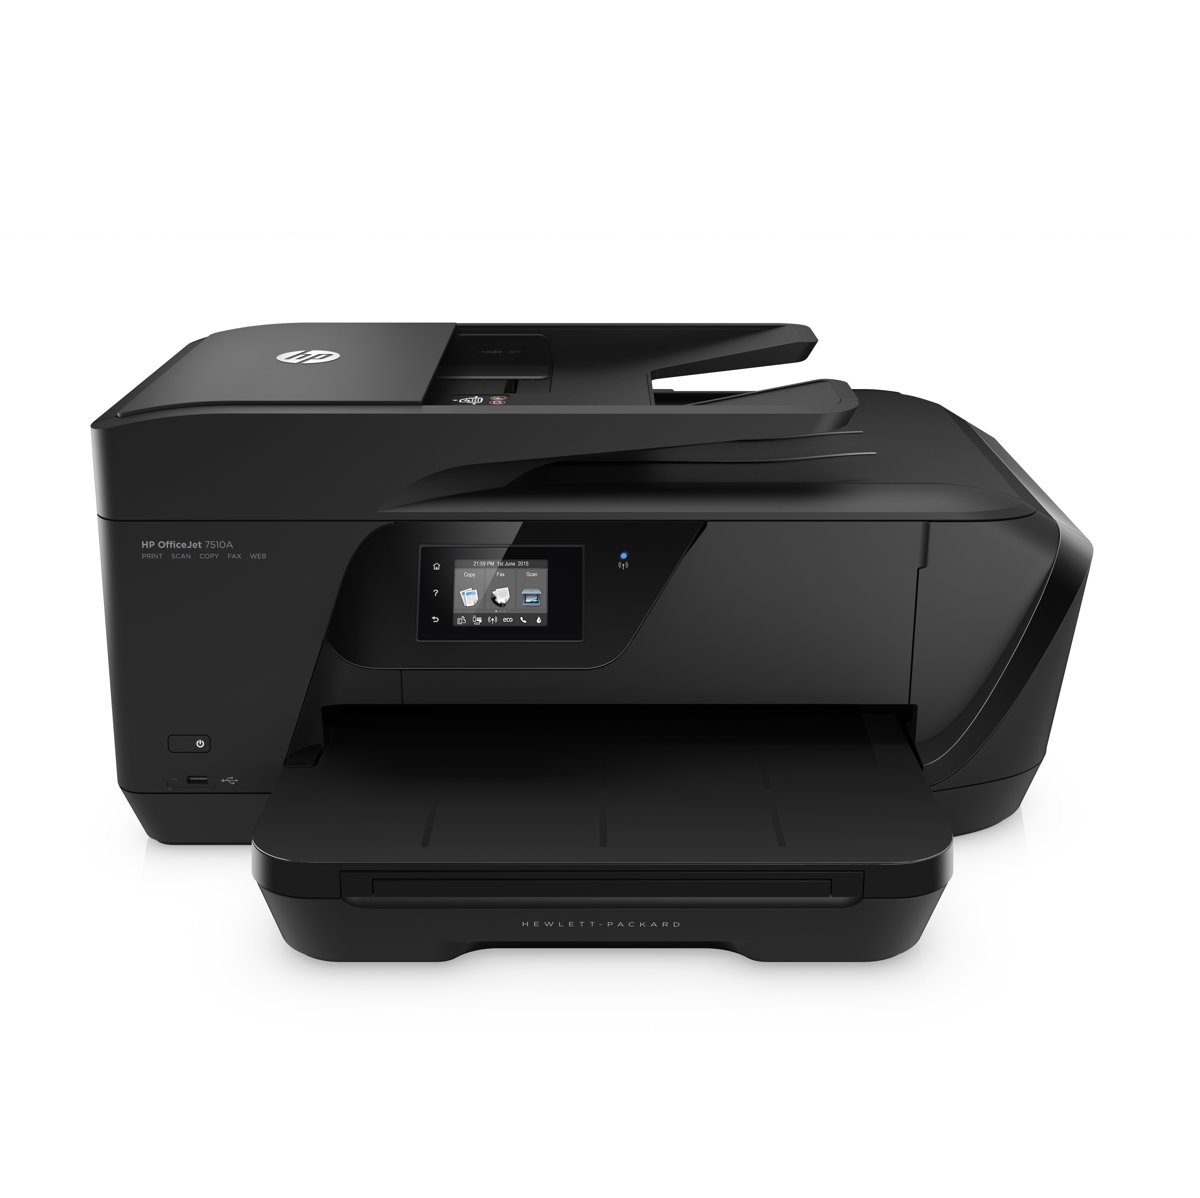 OfficeJet 7510 A3 Breedformaat - All-in-One